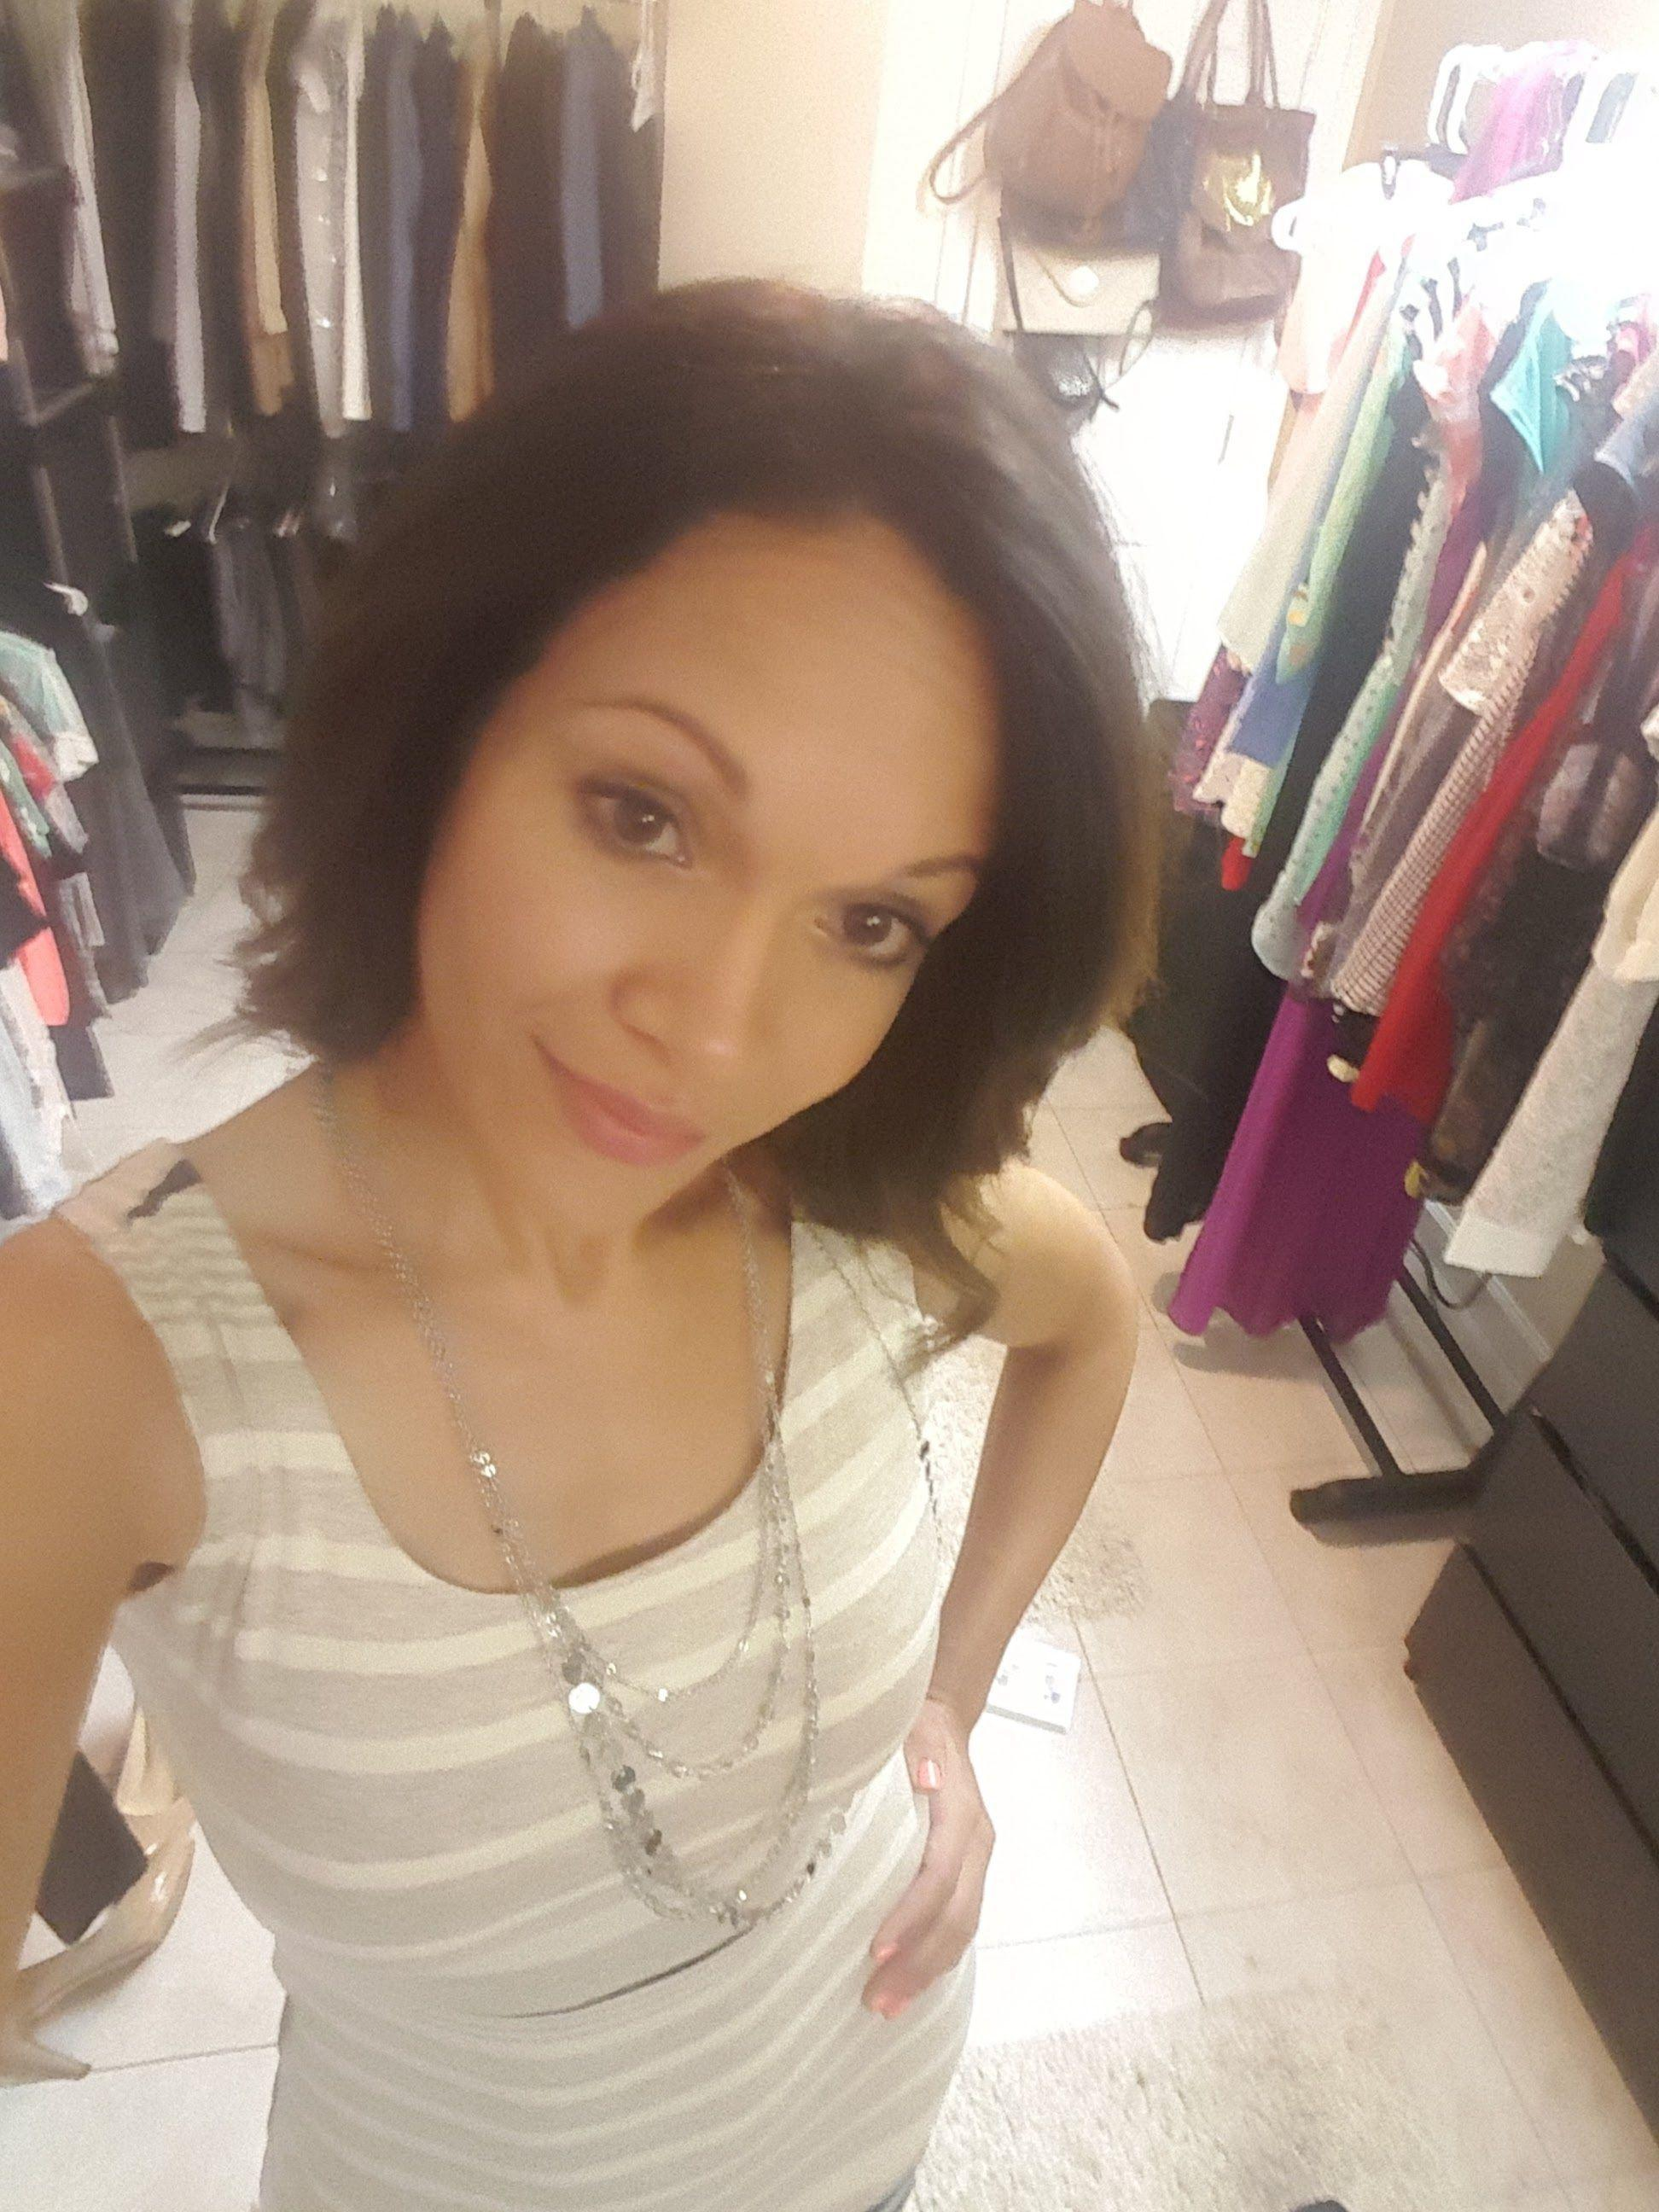 collegedale singles & personals Chat with sony, 58 today from florida city, united states start talking to her totally free at badoo.